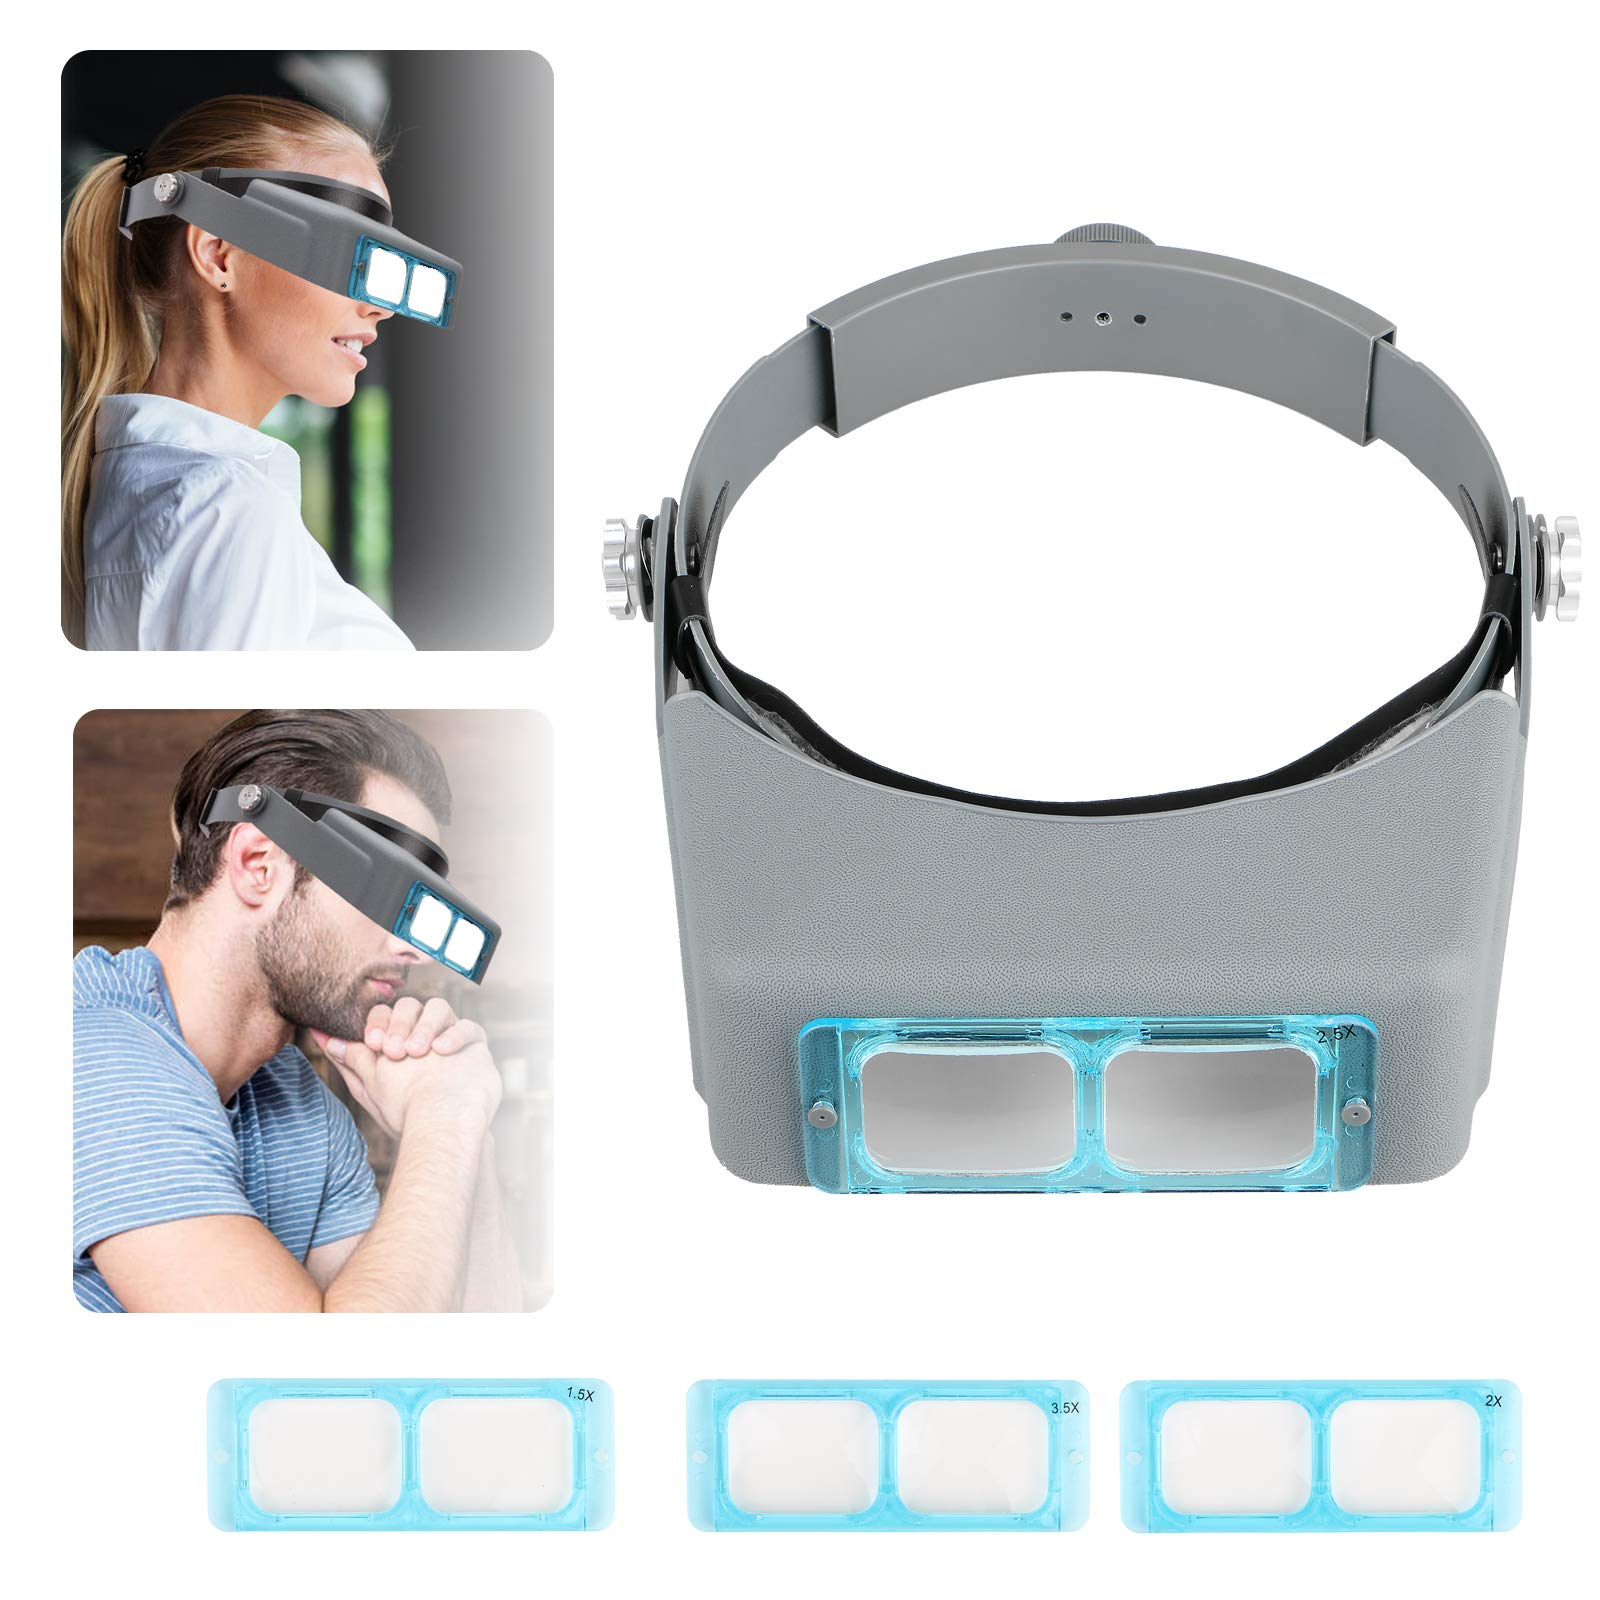 Head Mount Magnifier Headband Magnifier Professional Jeweler's Loupe Handsfree Reading Magnifier Magnifying Glasses with 4 Replaceable Lenses 1.5X,2.0X,2.5X,3.0X Magnification for Watch Repair, Crafts by Sunjoyco